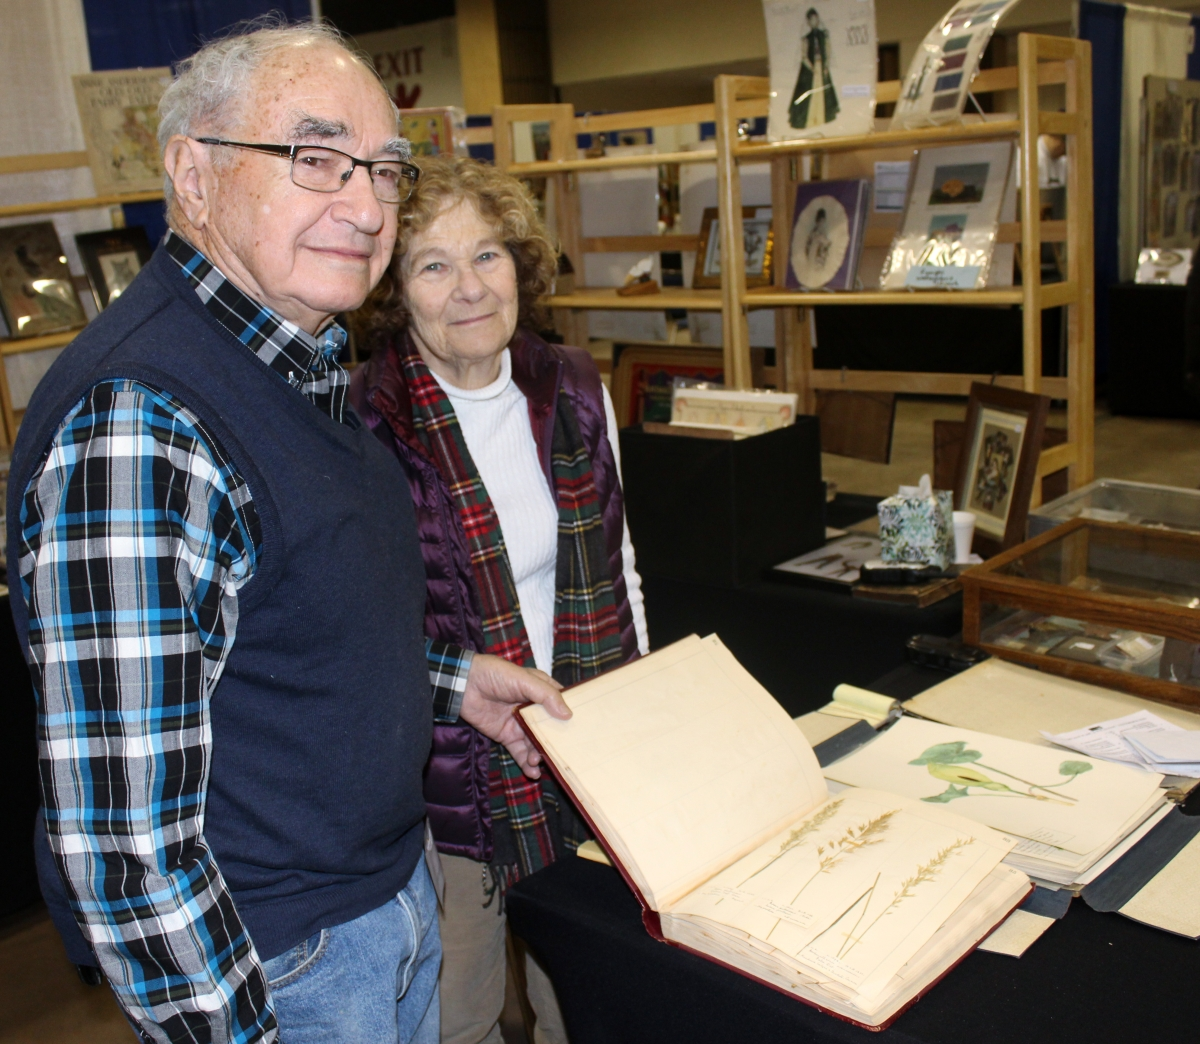 Norman and Doris Sandys of Albertson, N.Y., were finding success selling herbariums and collections of watercolors depicting native plants.